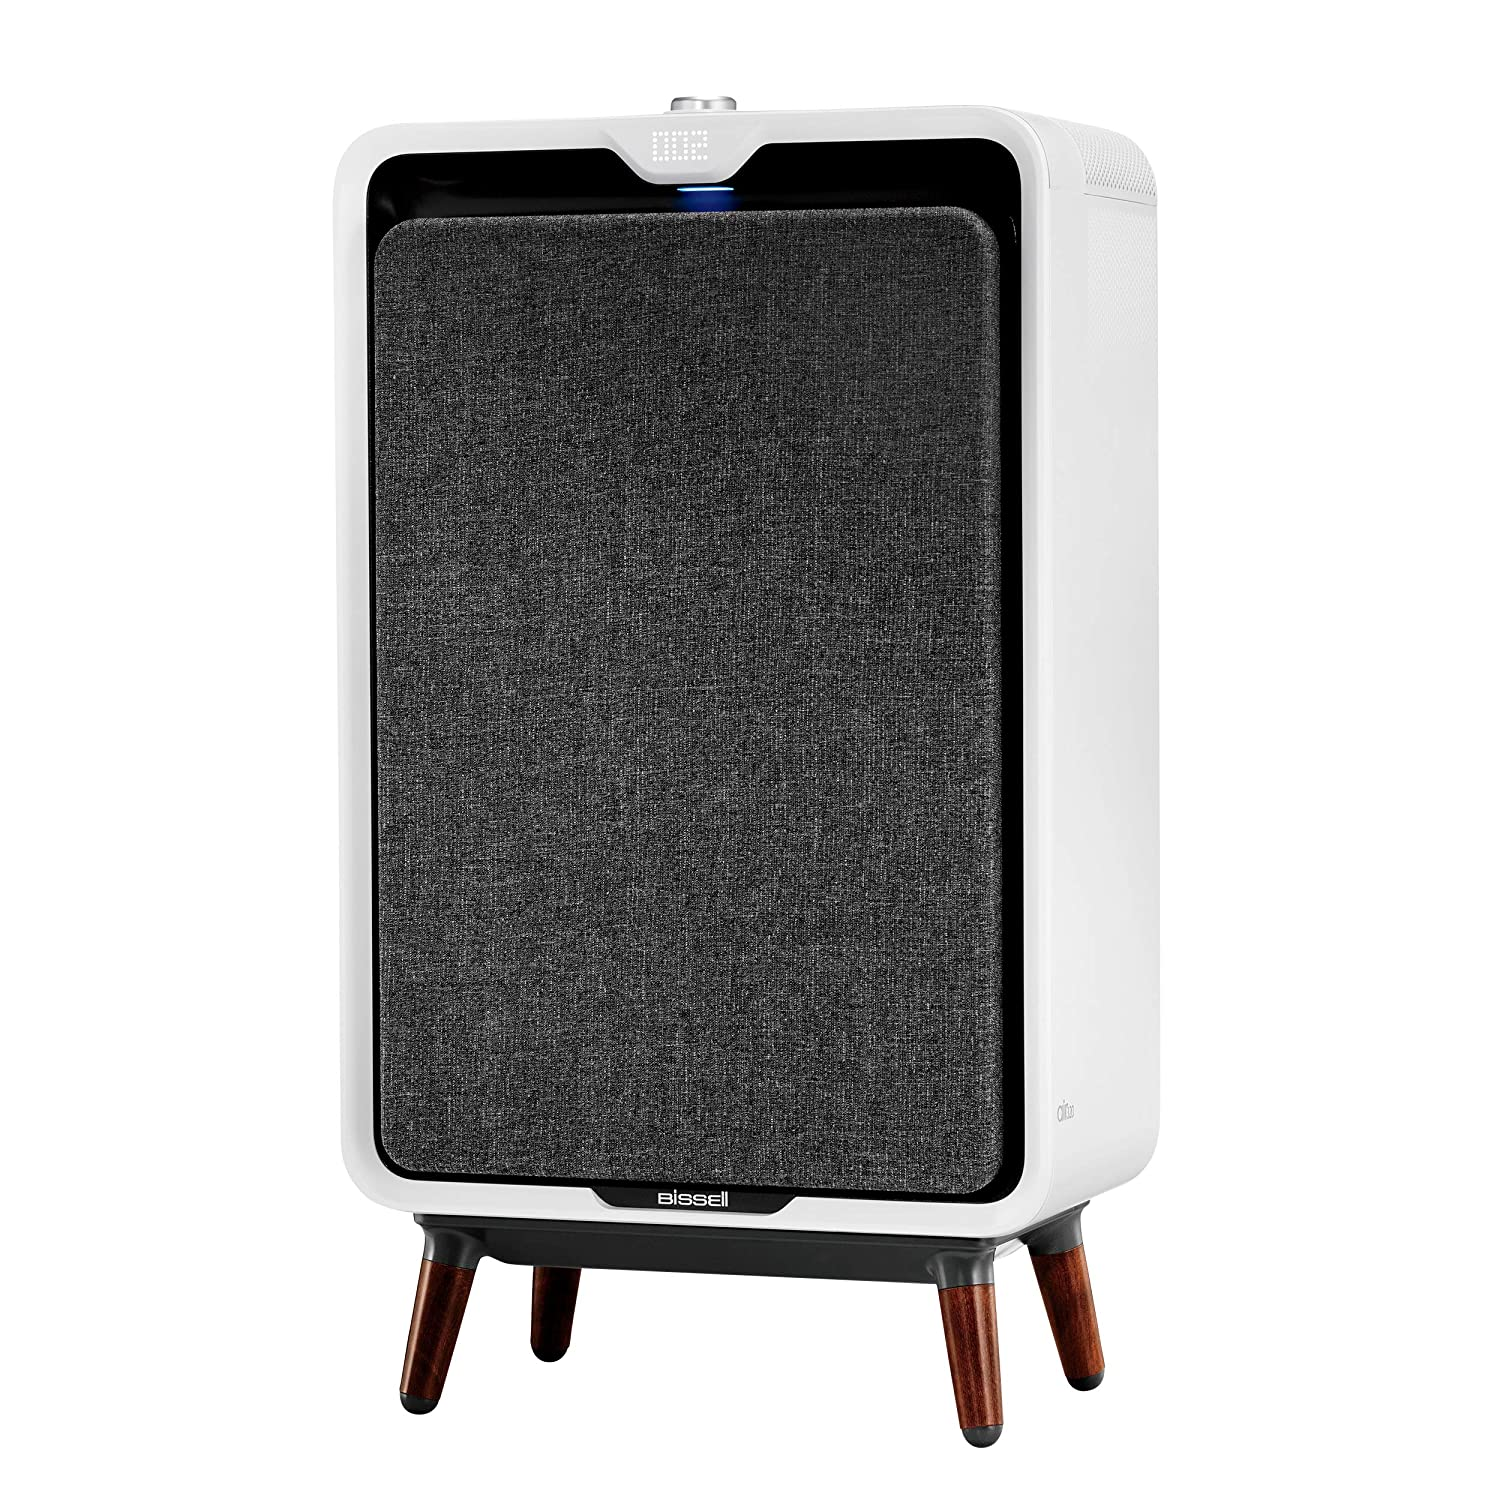 Bissell, 2768A Air320 Air Purifier for Home, Allergies and pet Dander